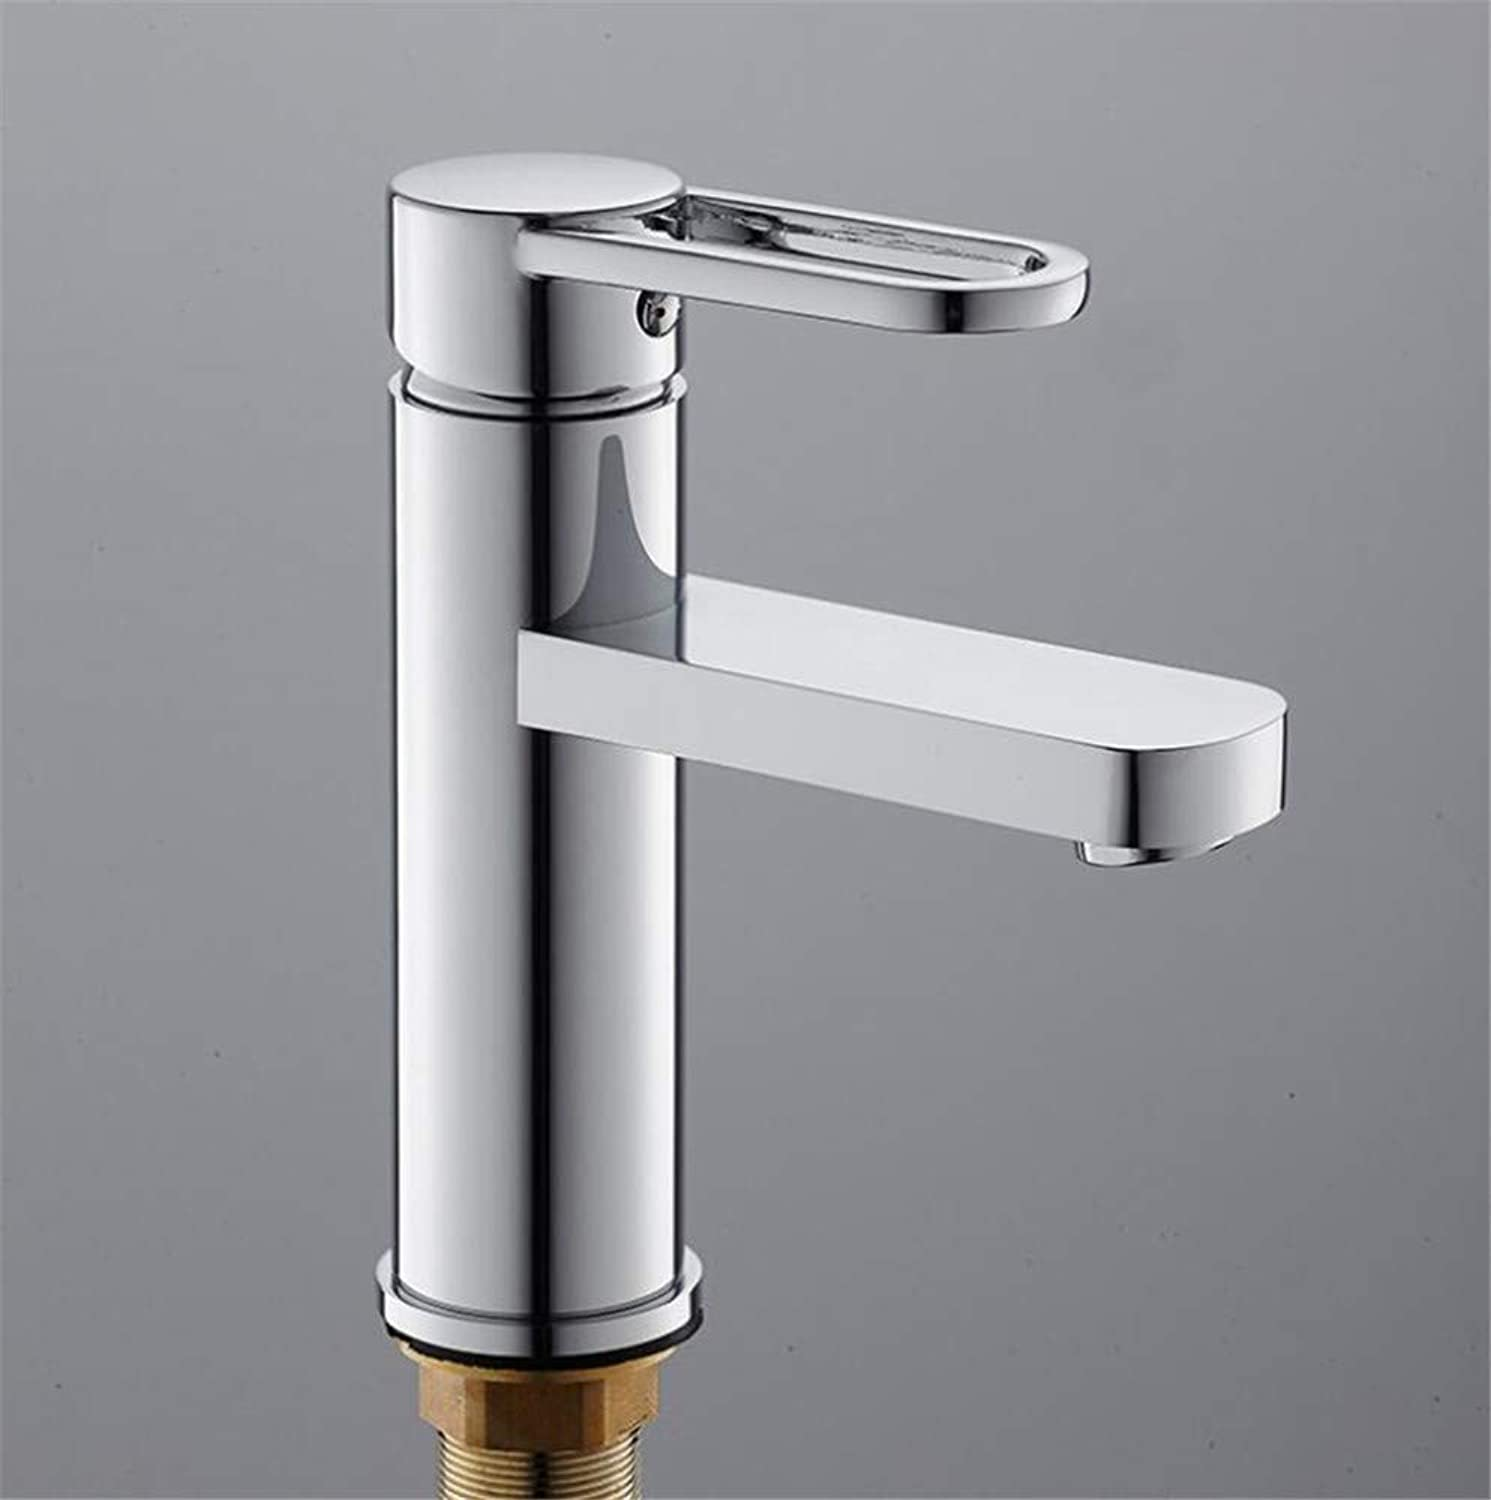 Bathroom Sink Basin Lever Mixer Tap European Minimalist Bathroom Faucet Lifting Cold and Hot Water Mixing Faucet Basin Faucet